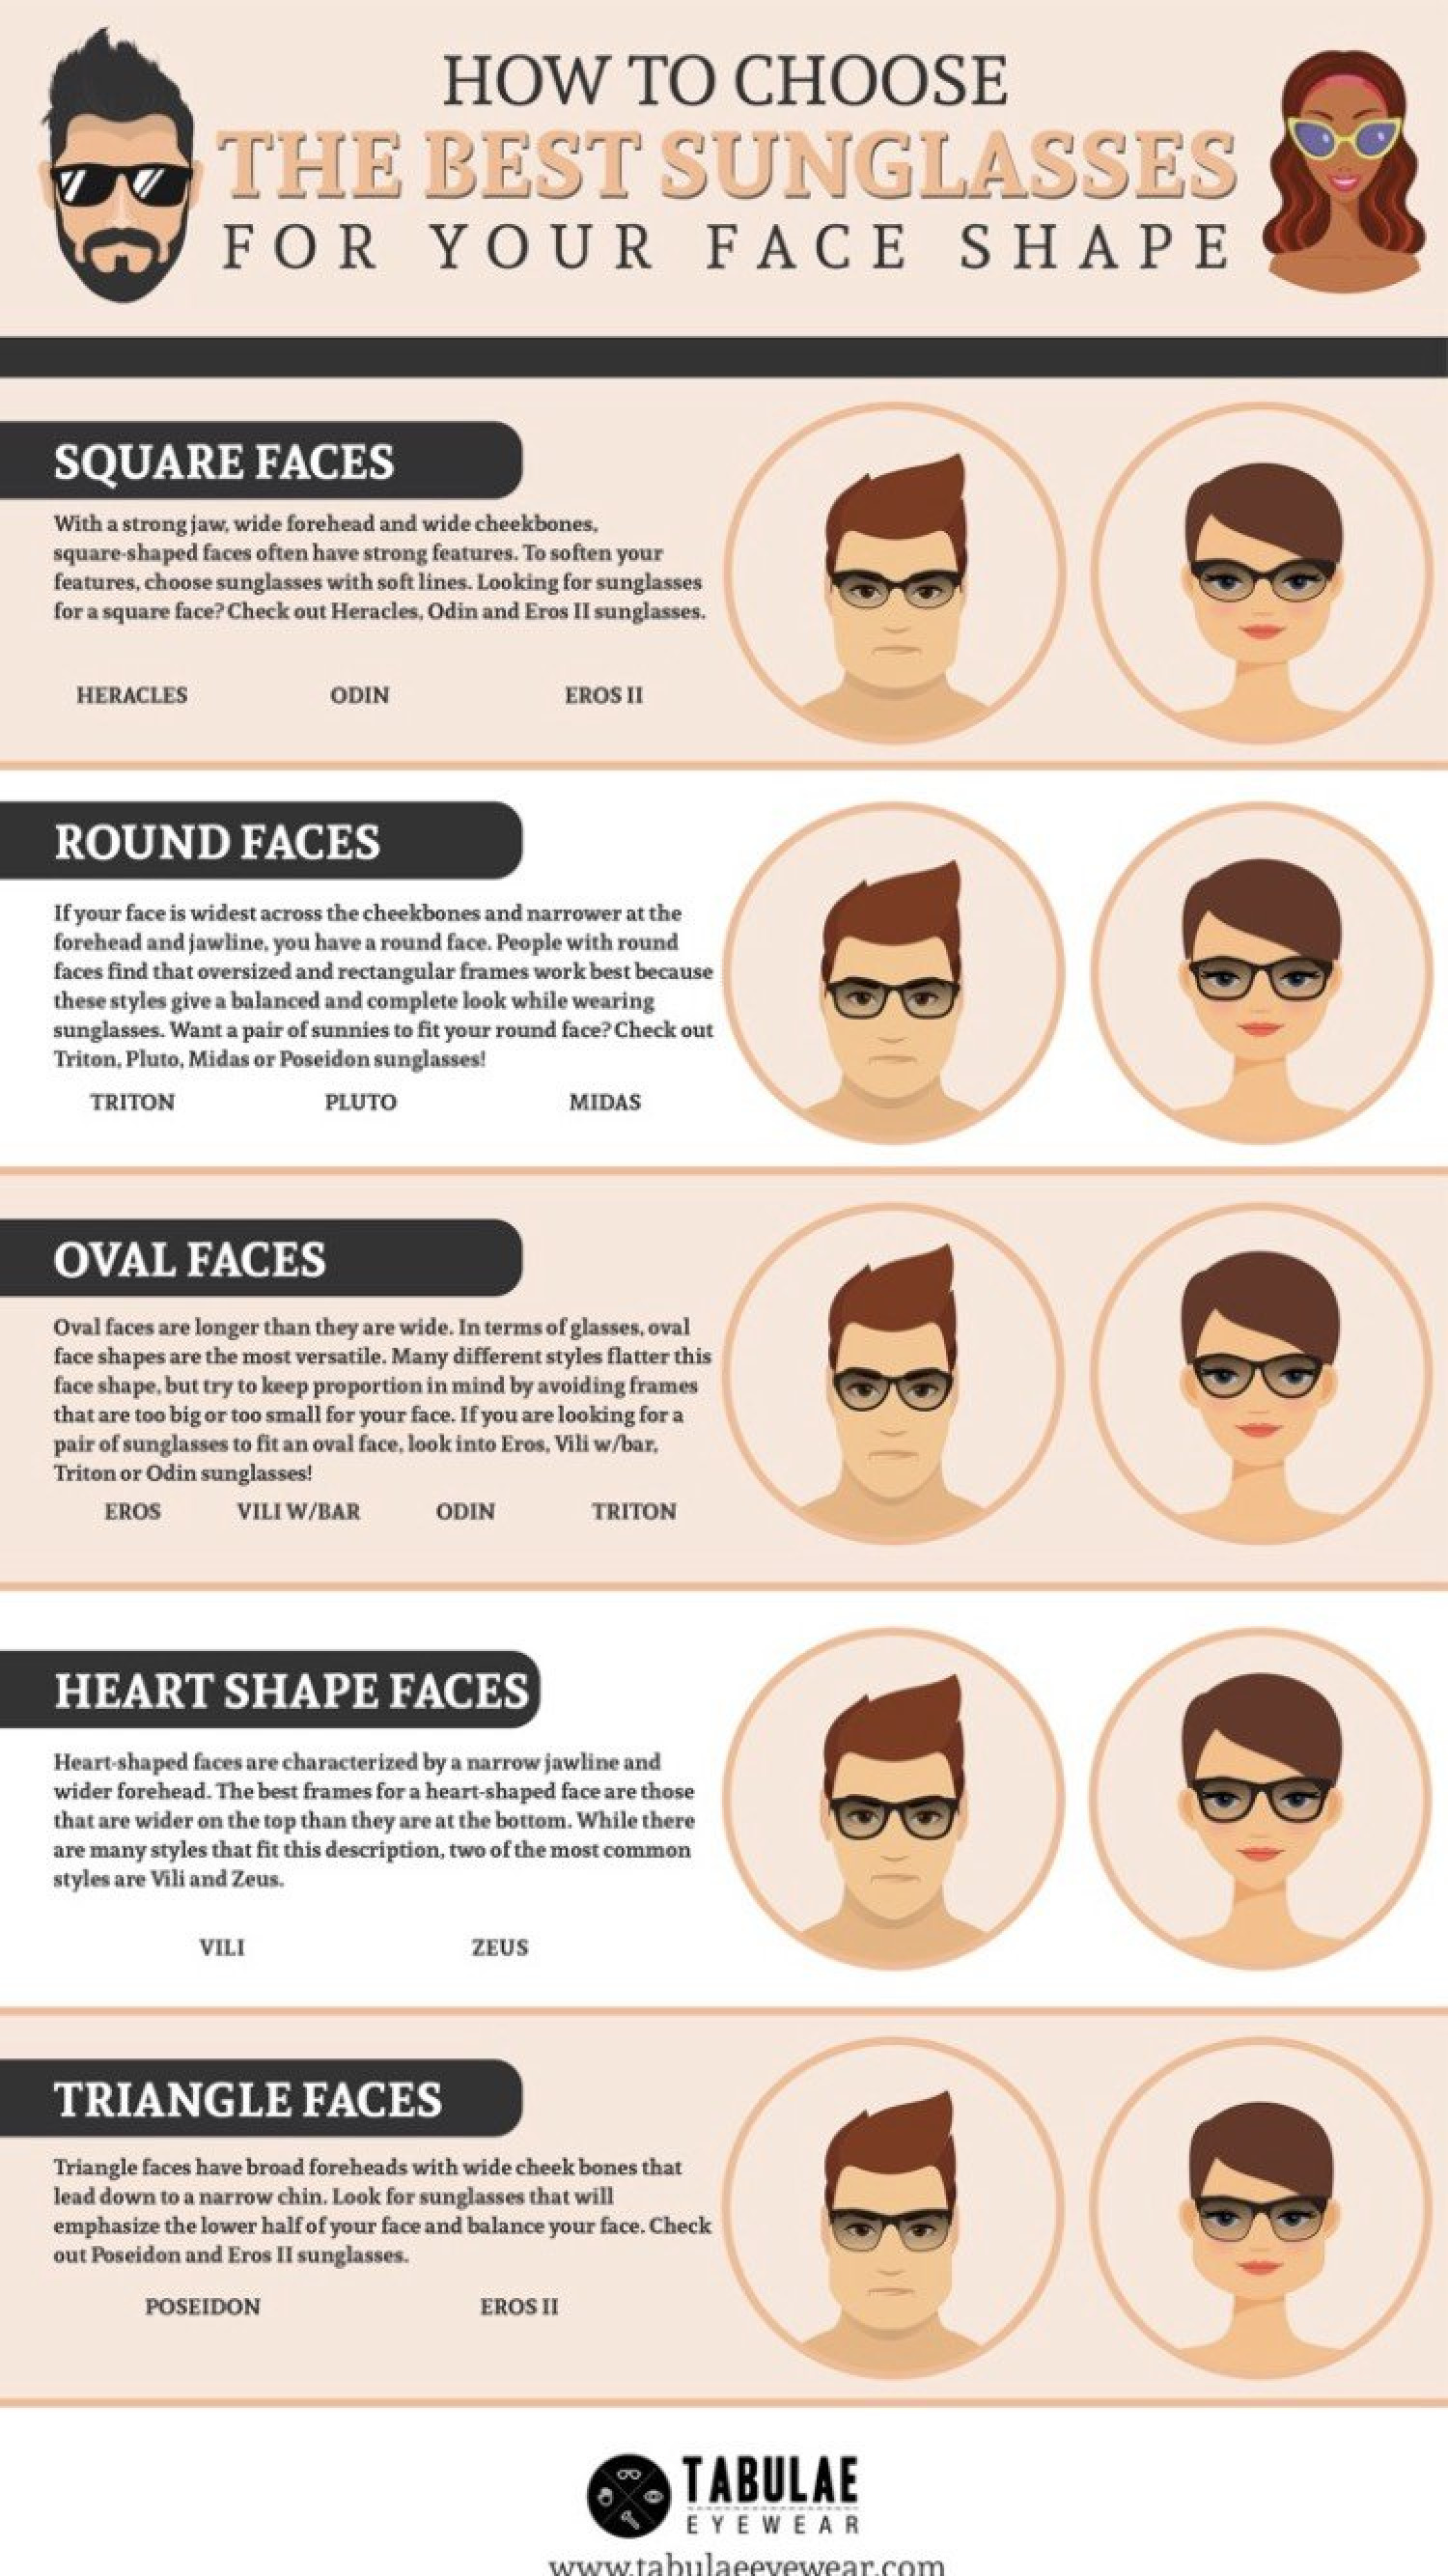 3ced2ec72 Tabulae Eyewear - How to Choose the Best Sunglasses for Your Face Shape  Infographic